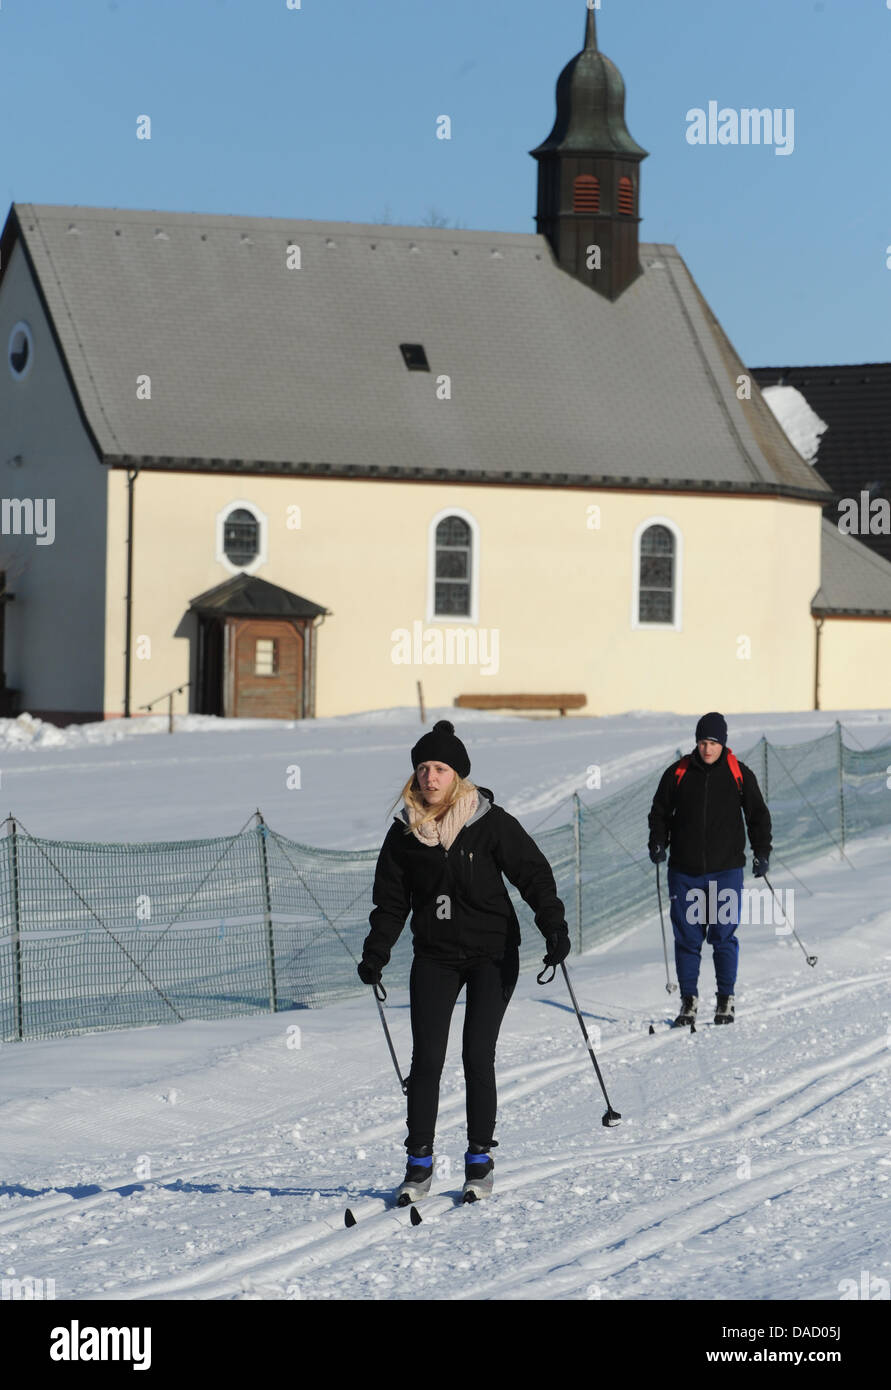 Two cross-country skiers go past the chapel at the skiing trail at the Thurner mountain near St. Maergen, Germany, - Stock Image